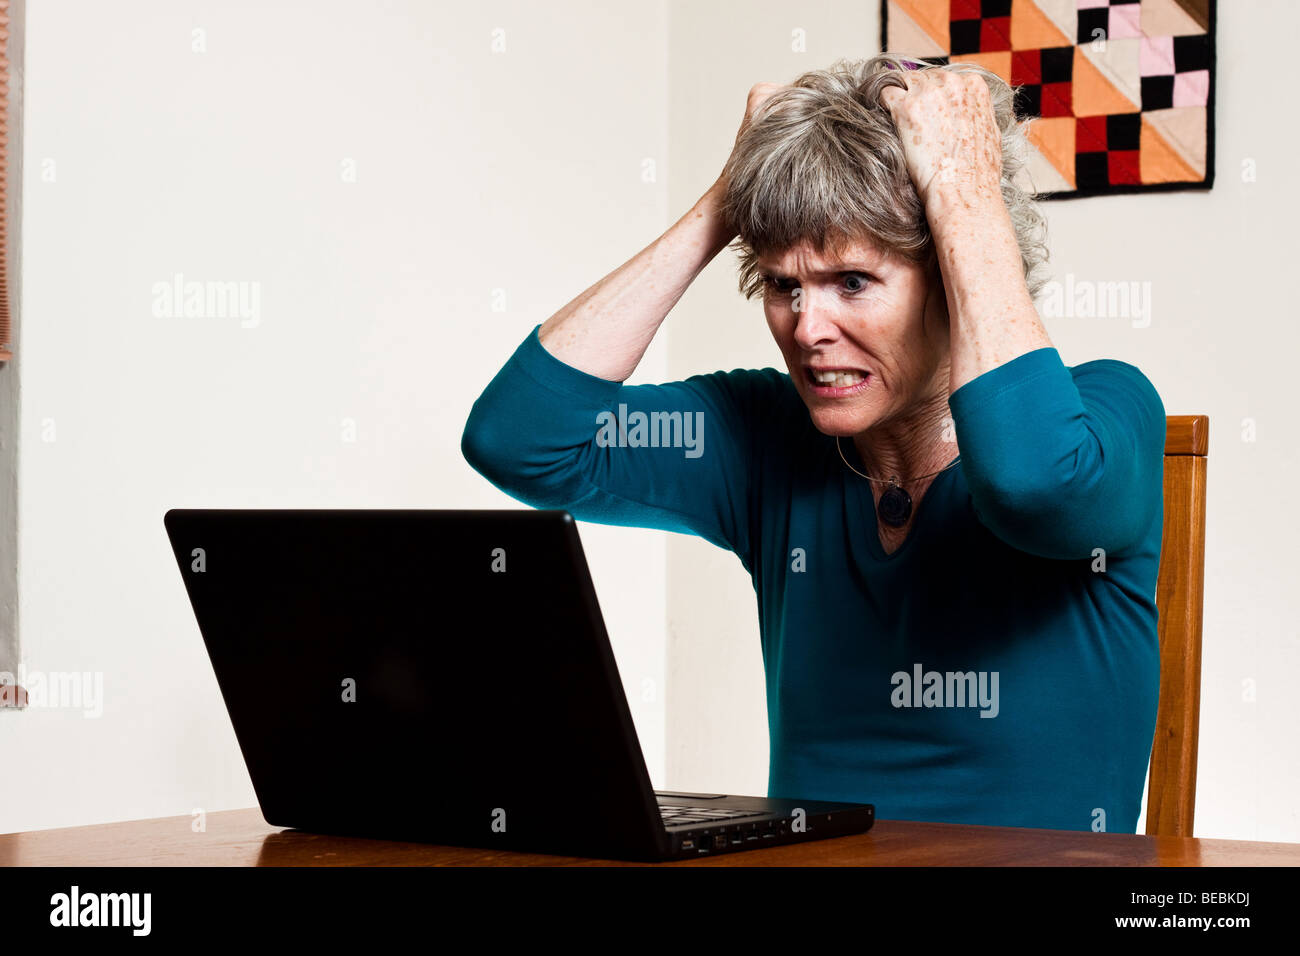 Data loss - pulling your hair out - Stock Image